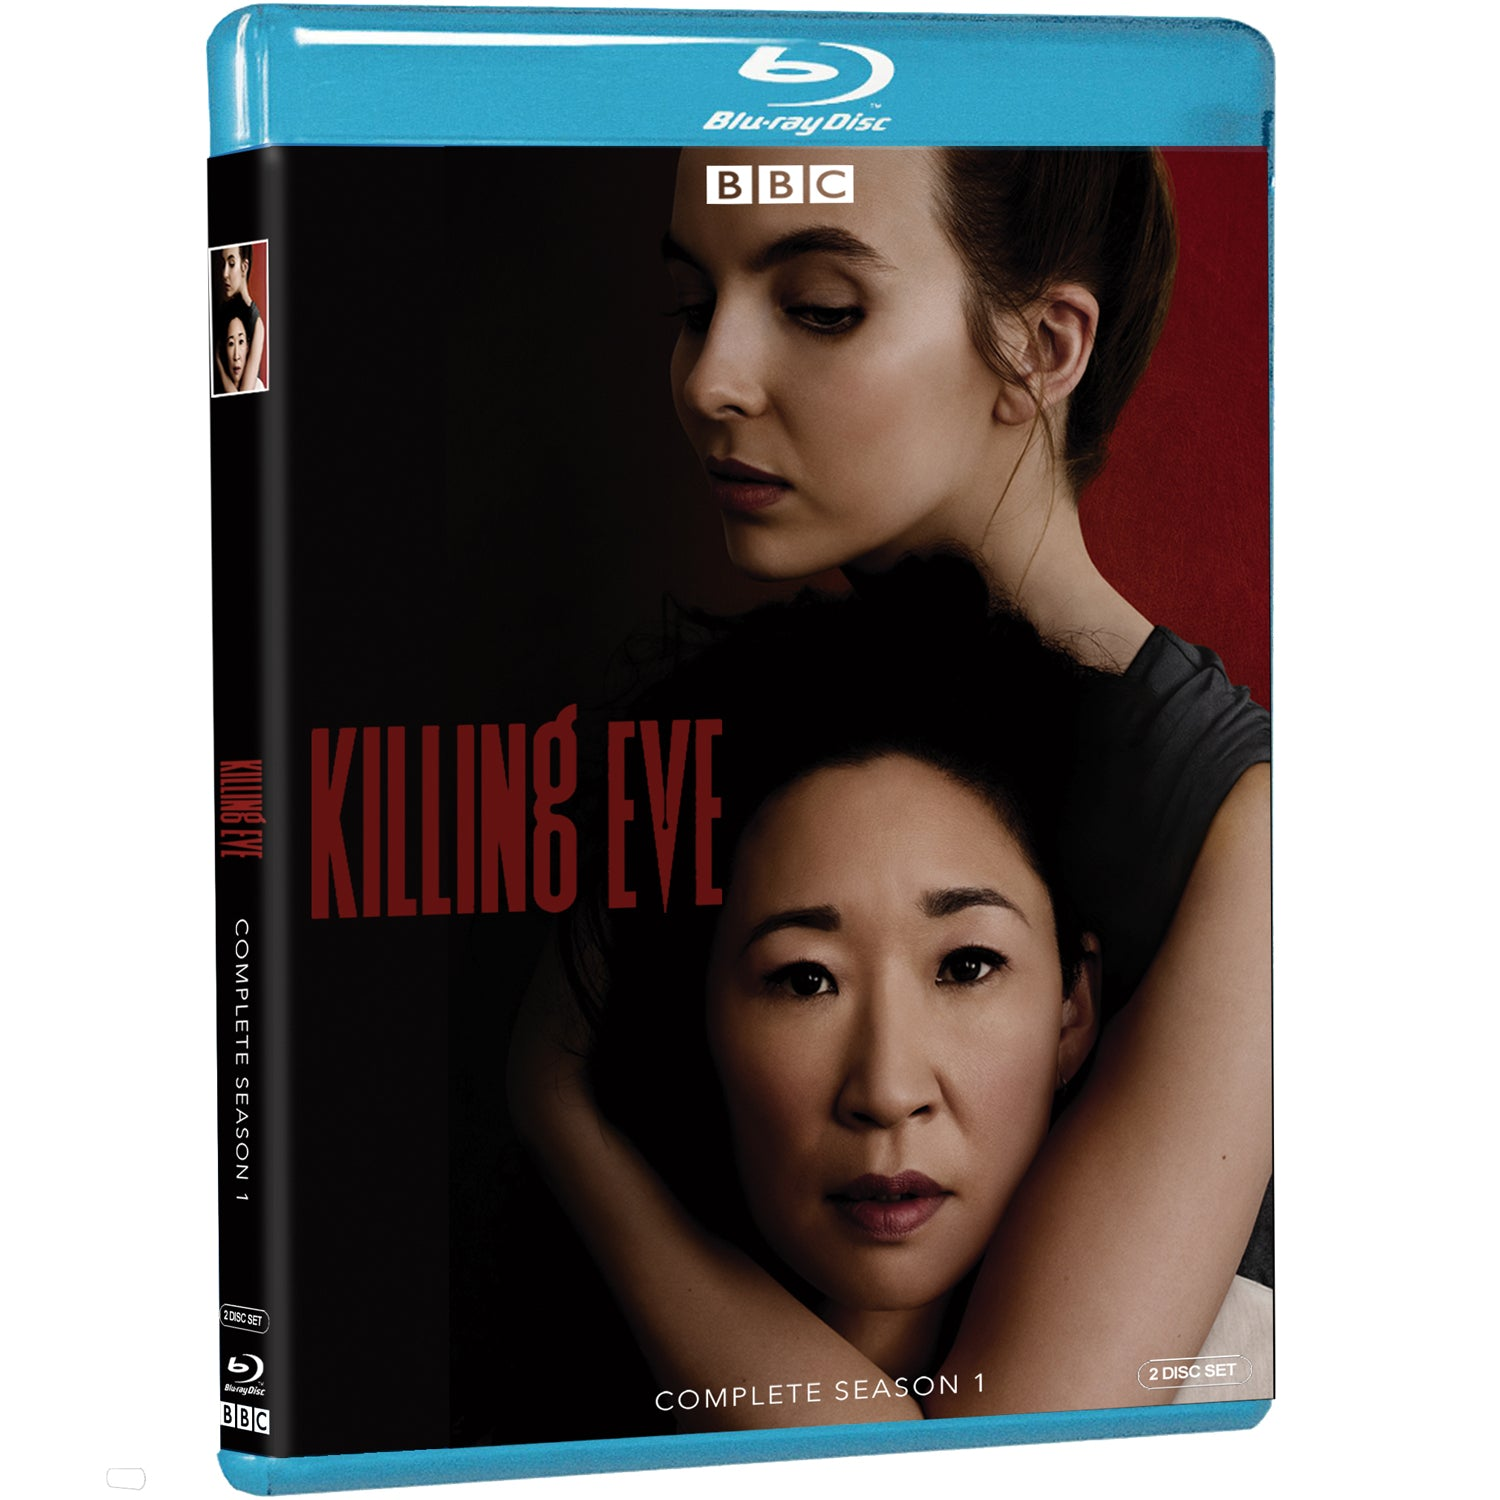 Killing Eve (Blu-ray)